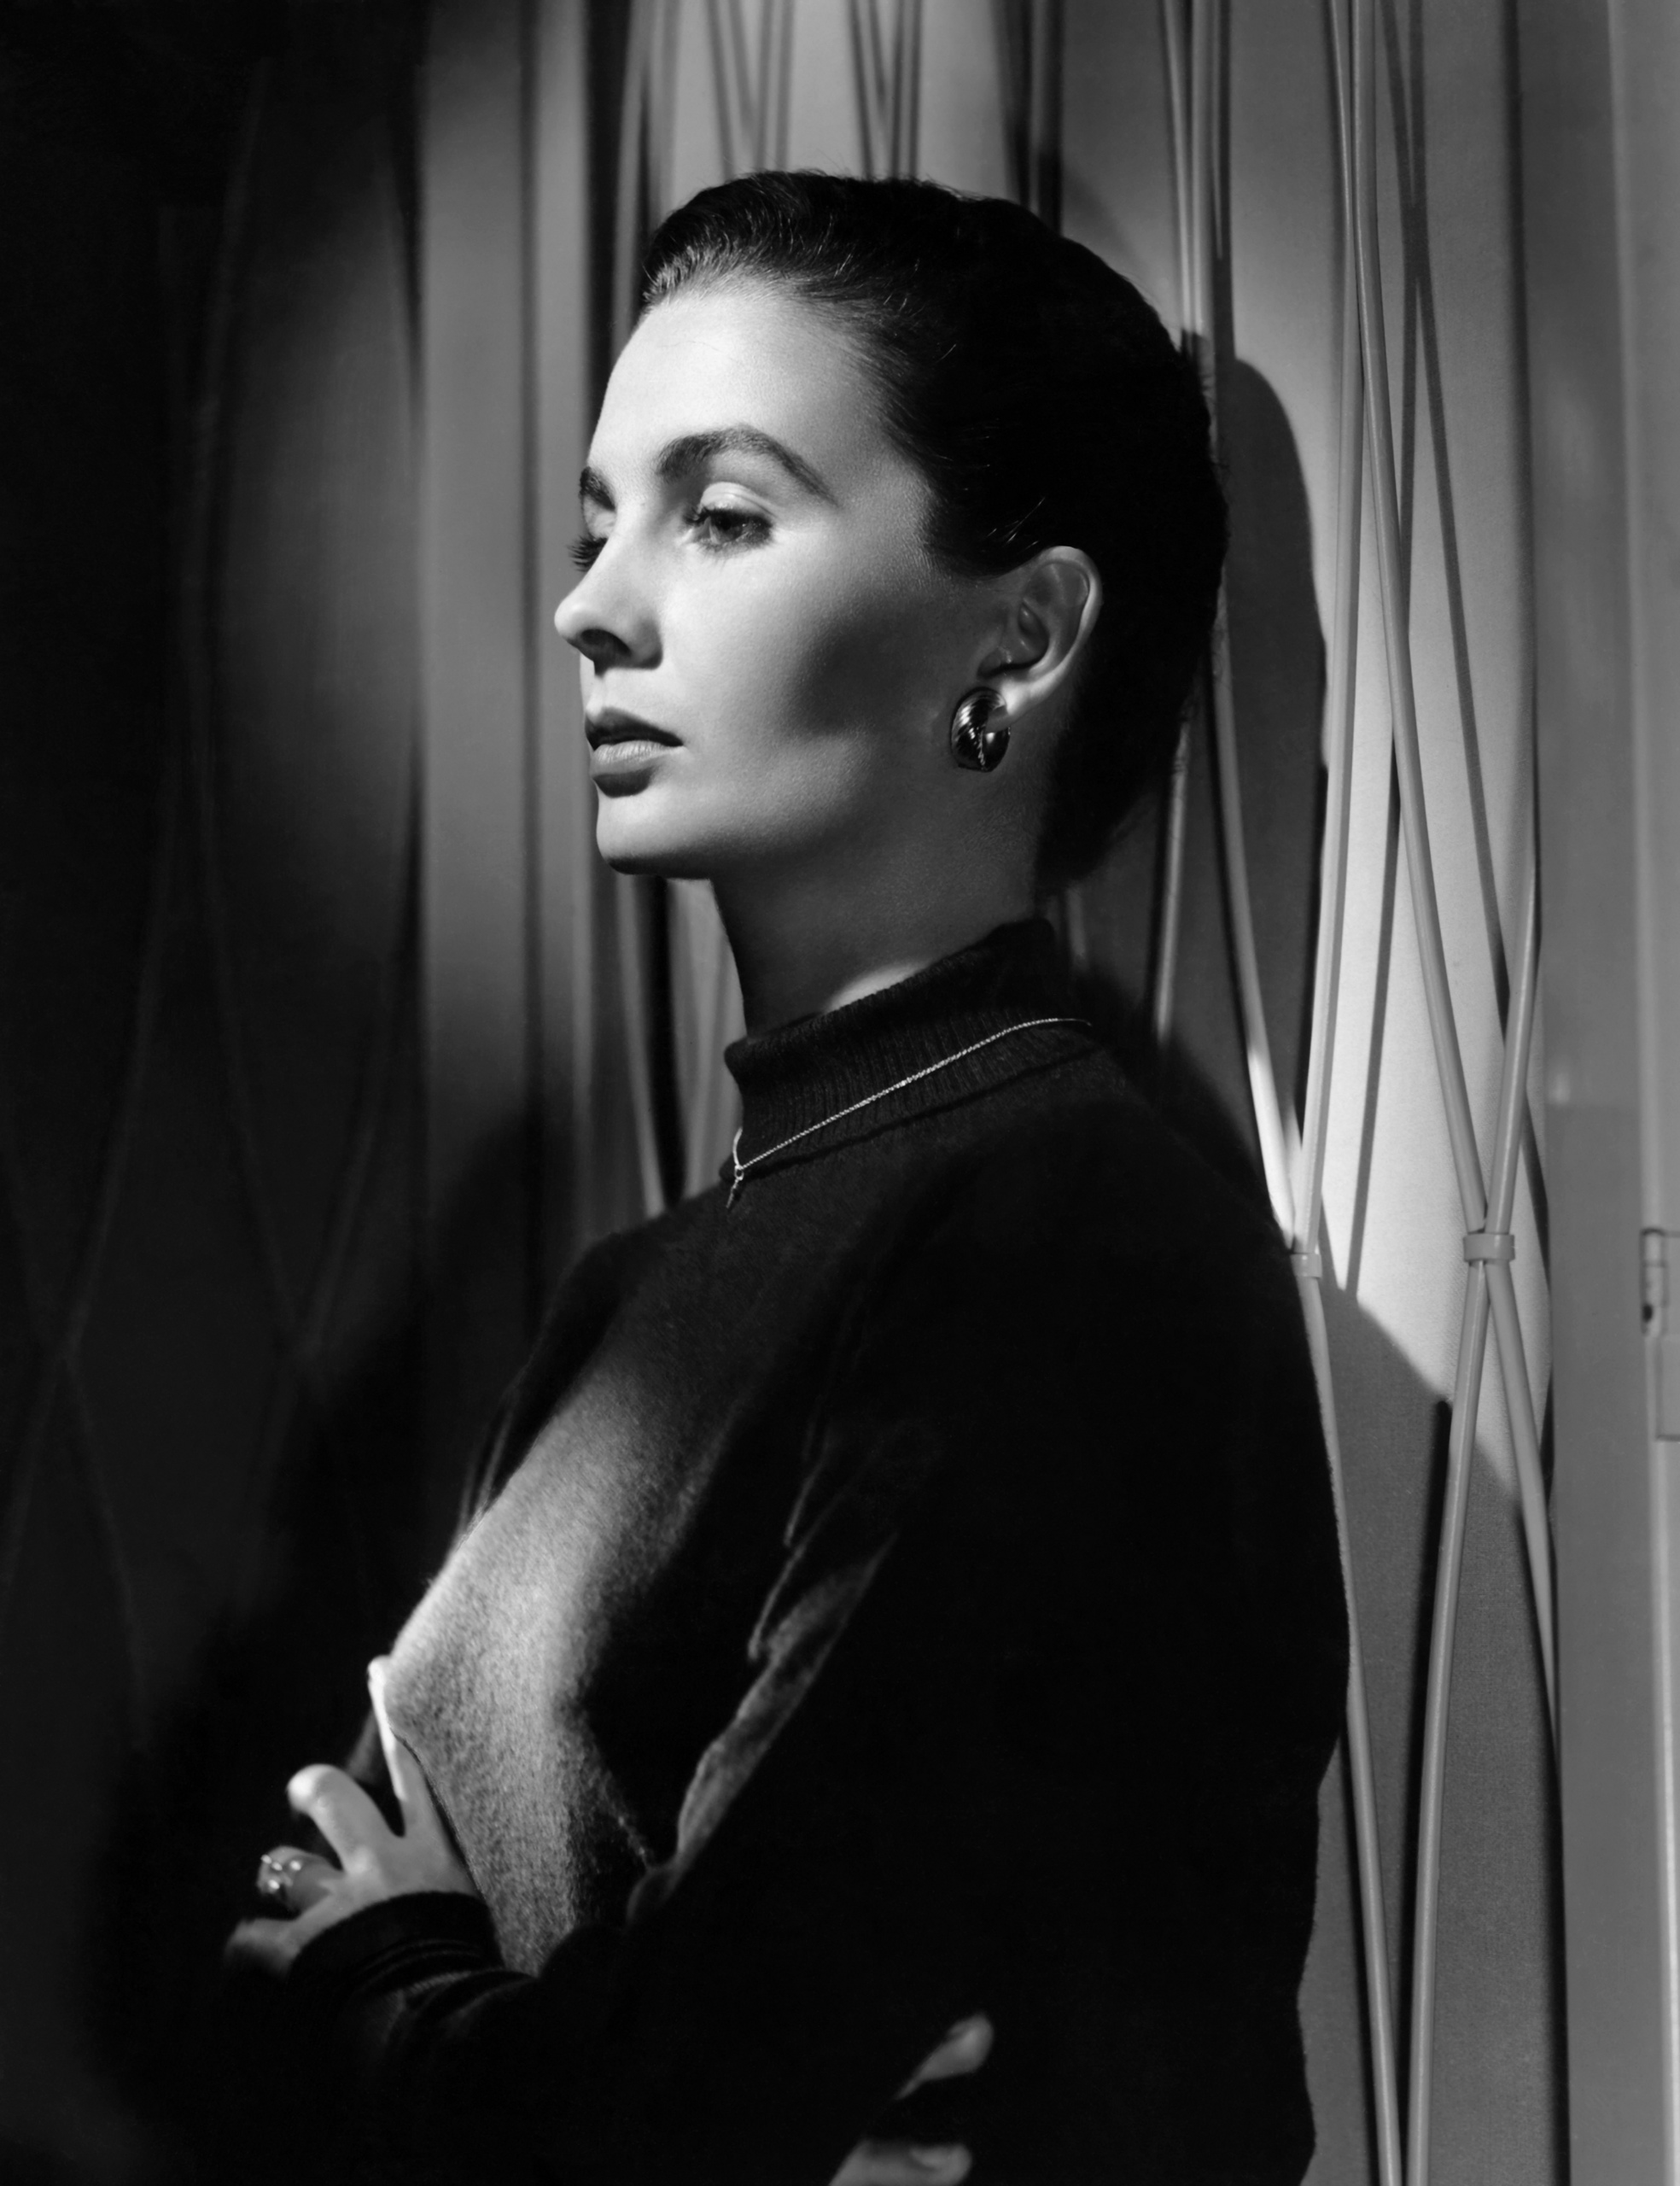 Jean Simmons nude (66 photos), Sexy, Sideboobs, Twitter, see through 2006